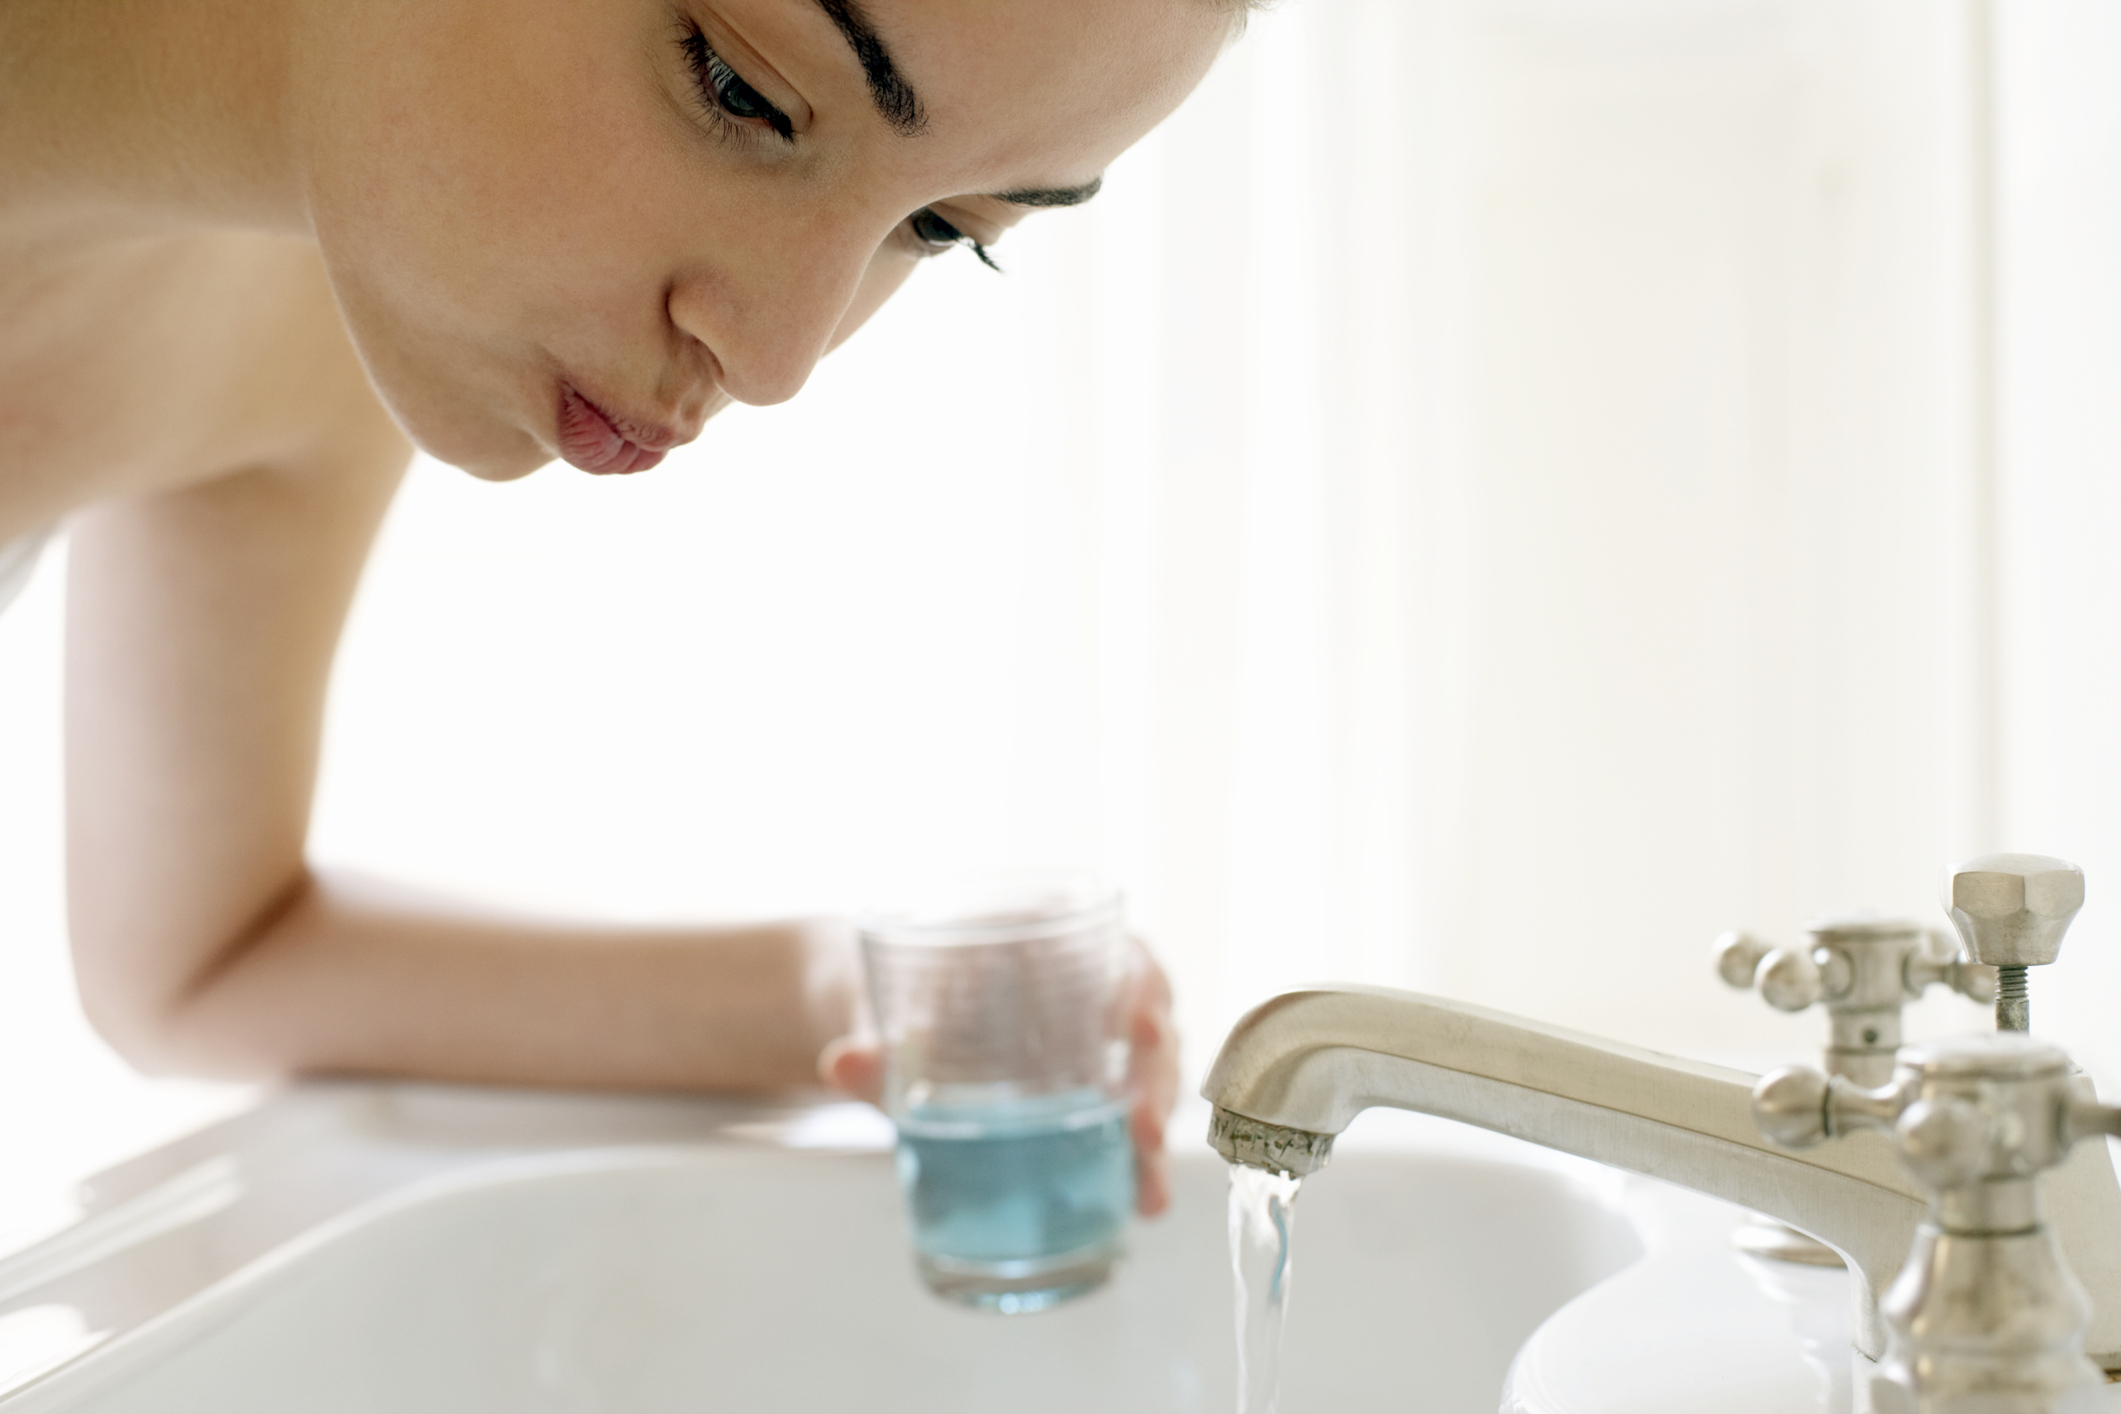 How mouthwash could help reduce the spread of coronavirus